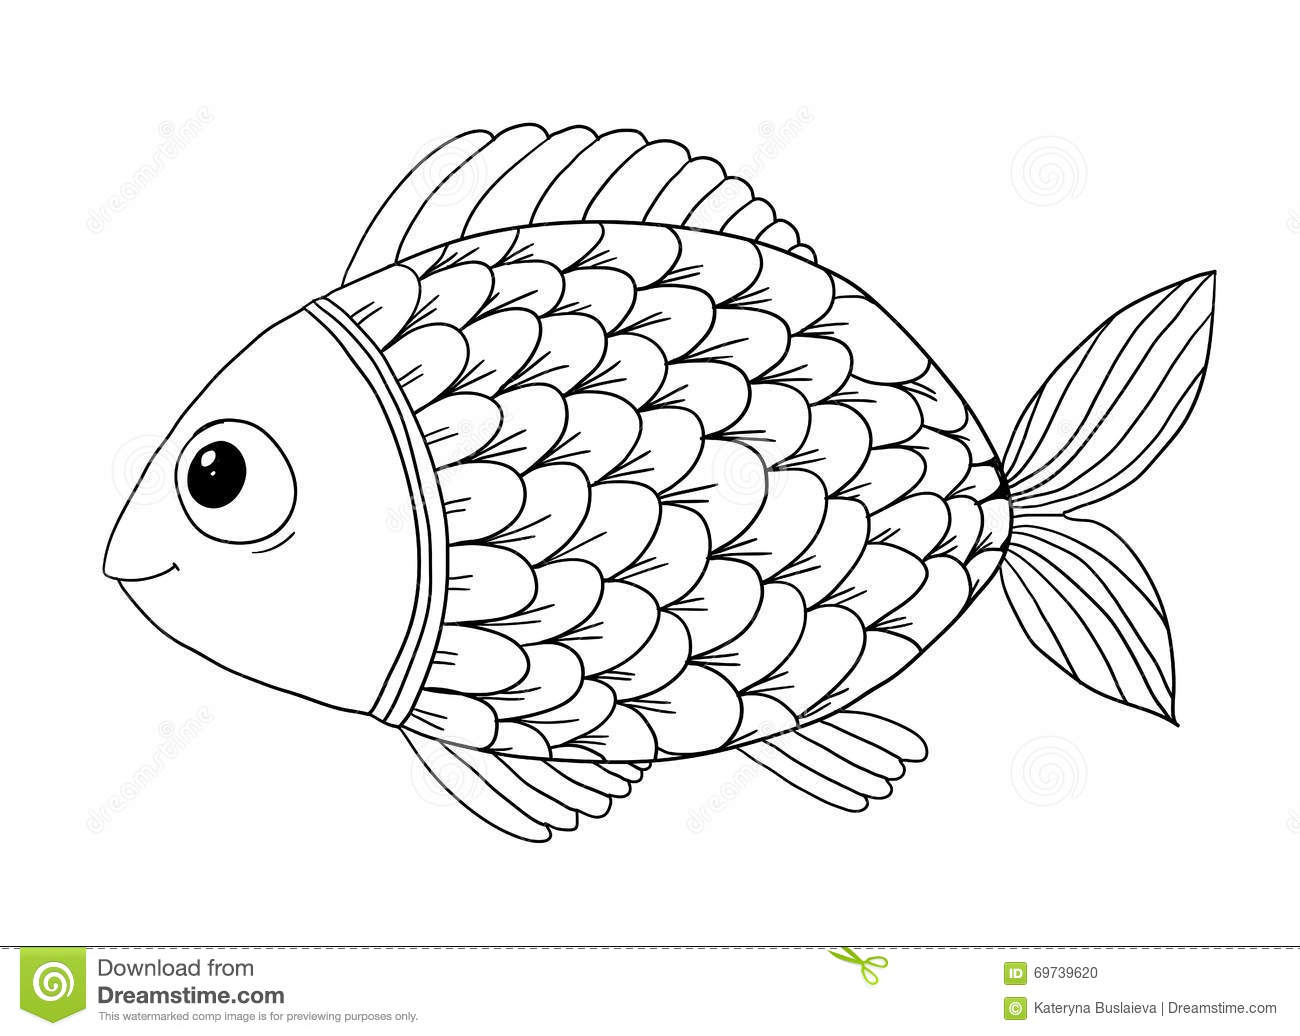 Coloring book with fish stock vector. Illustration of friendly ...